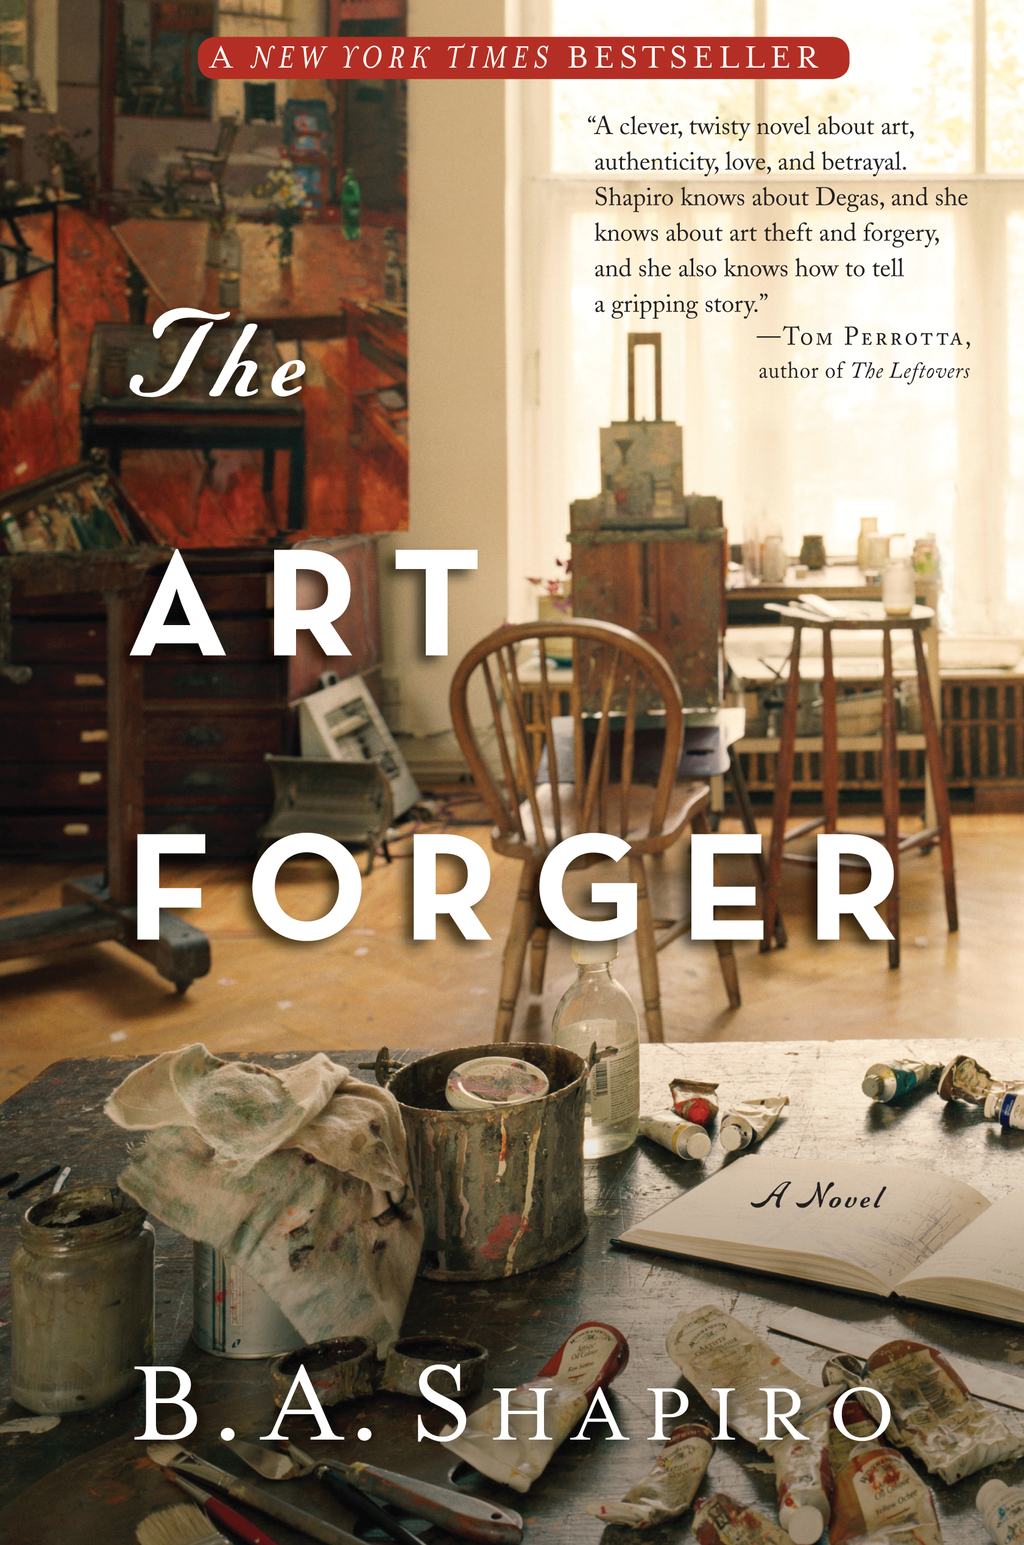 The Art Forger: A Novel By: B. A. Shapiro